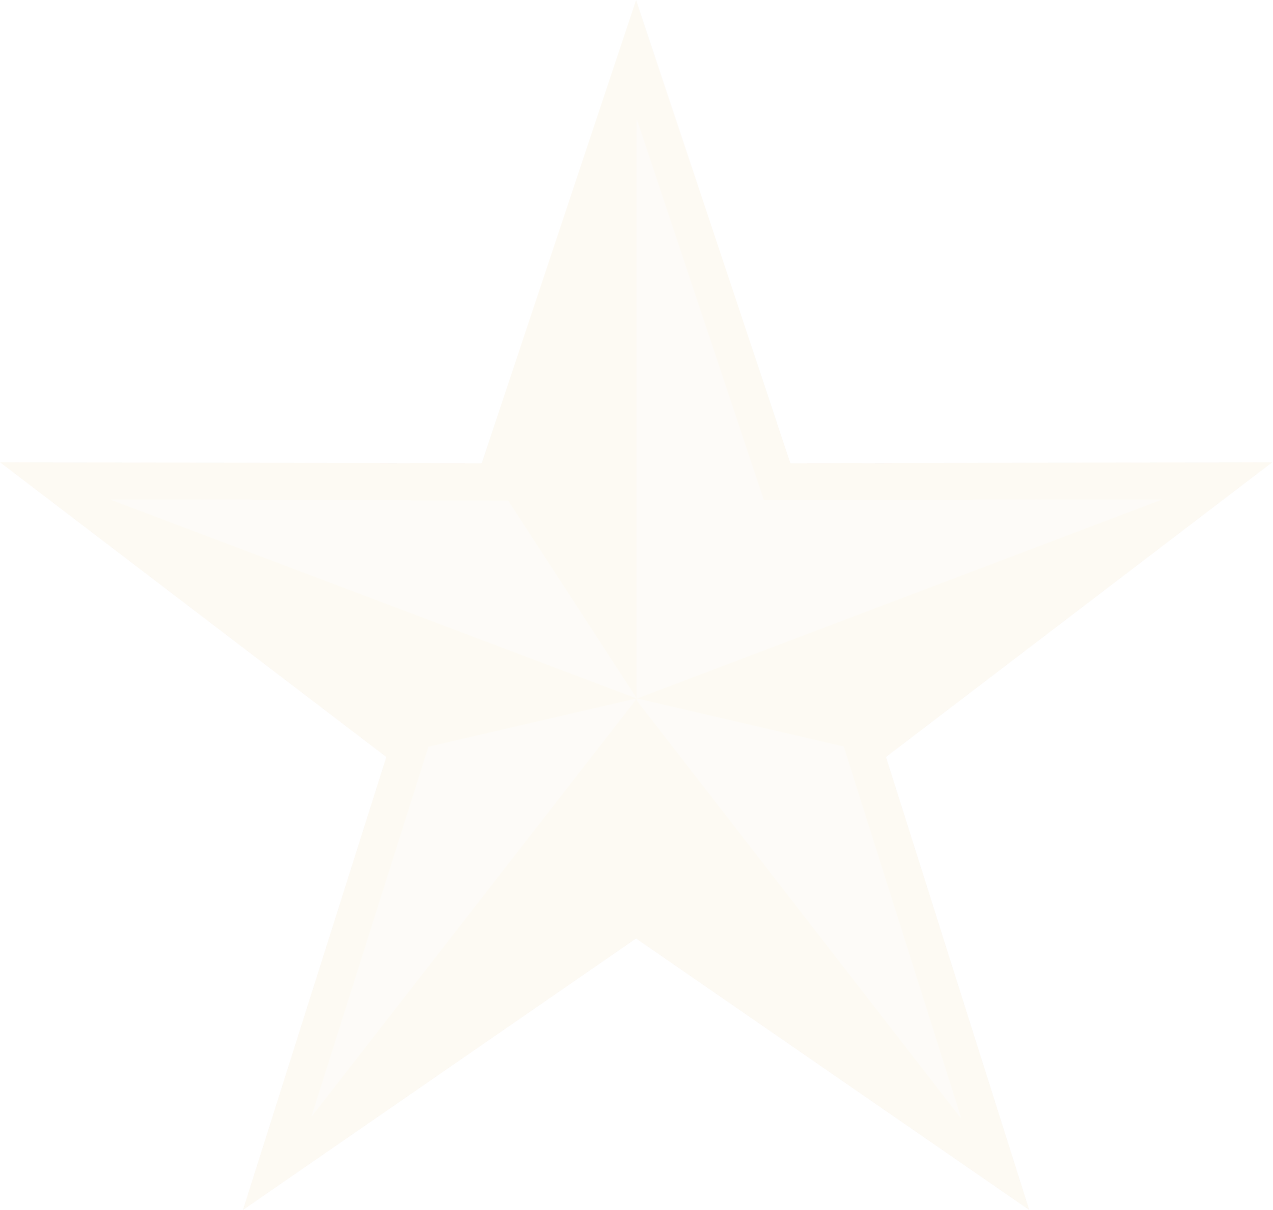 Star mark from Flagship Bank logo